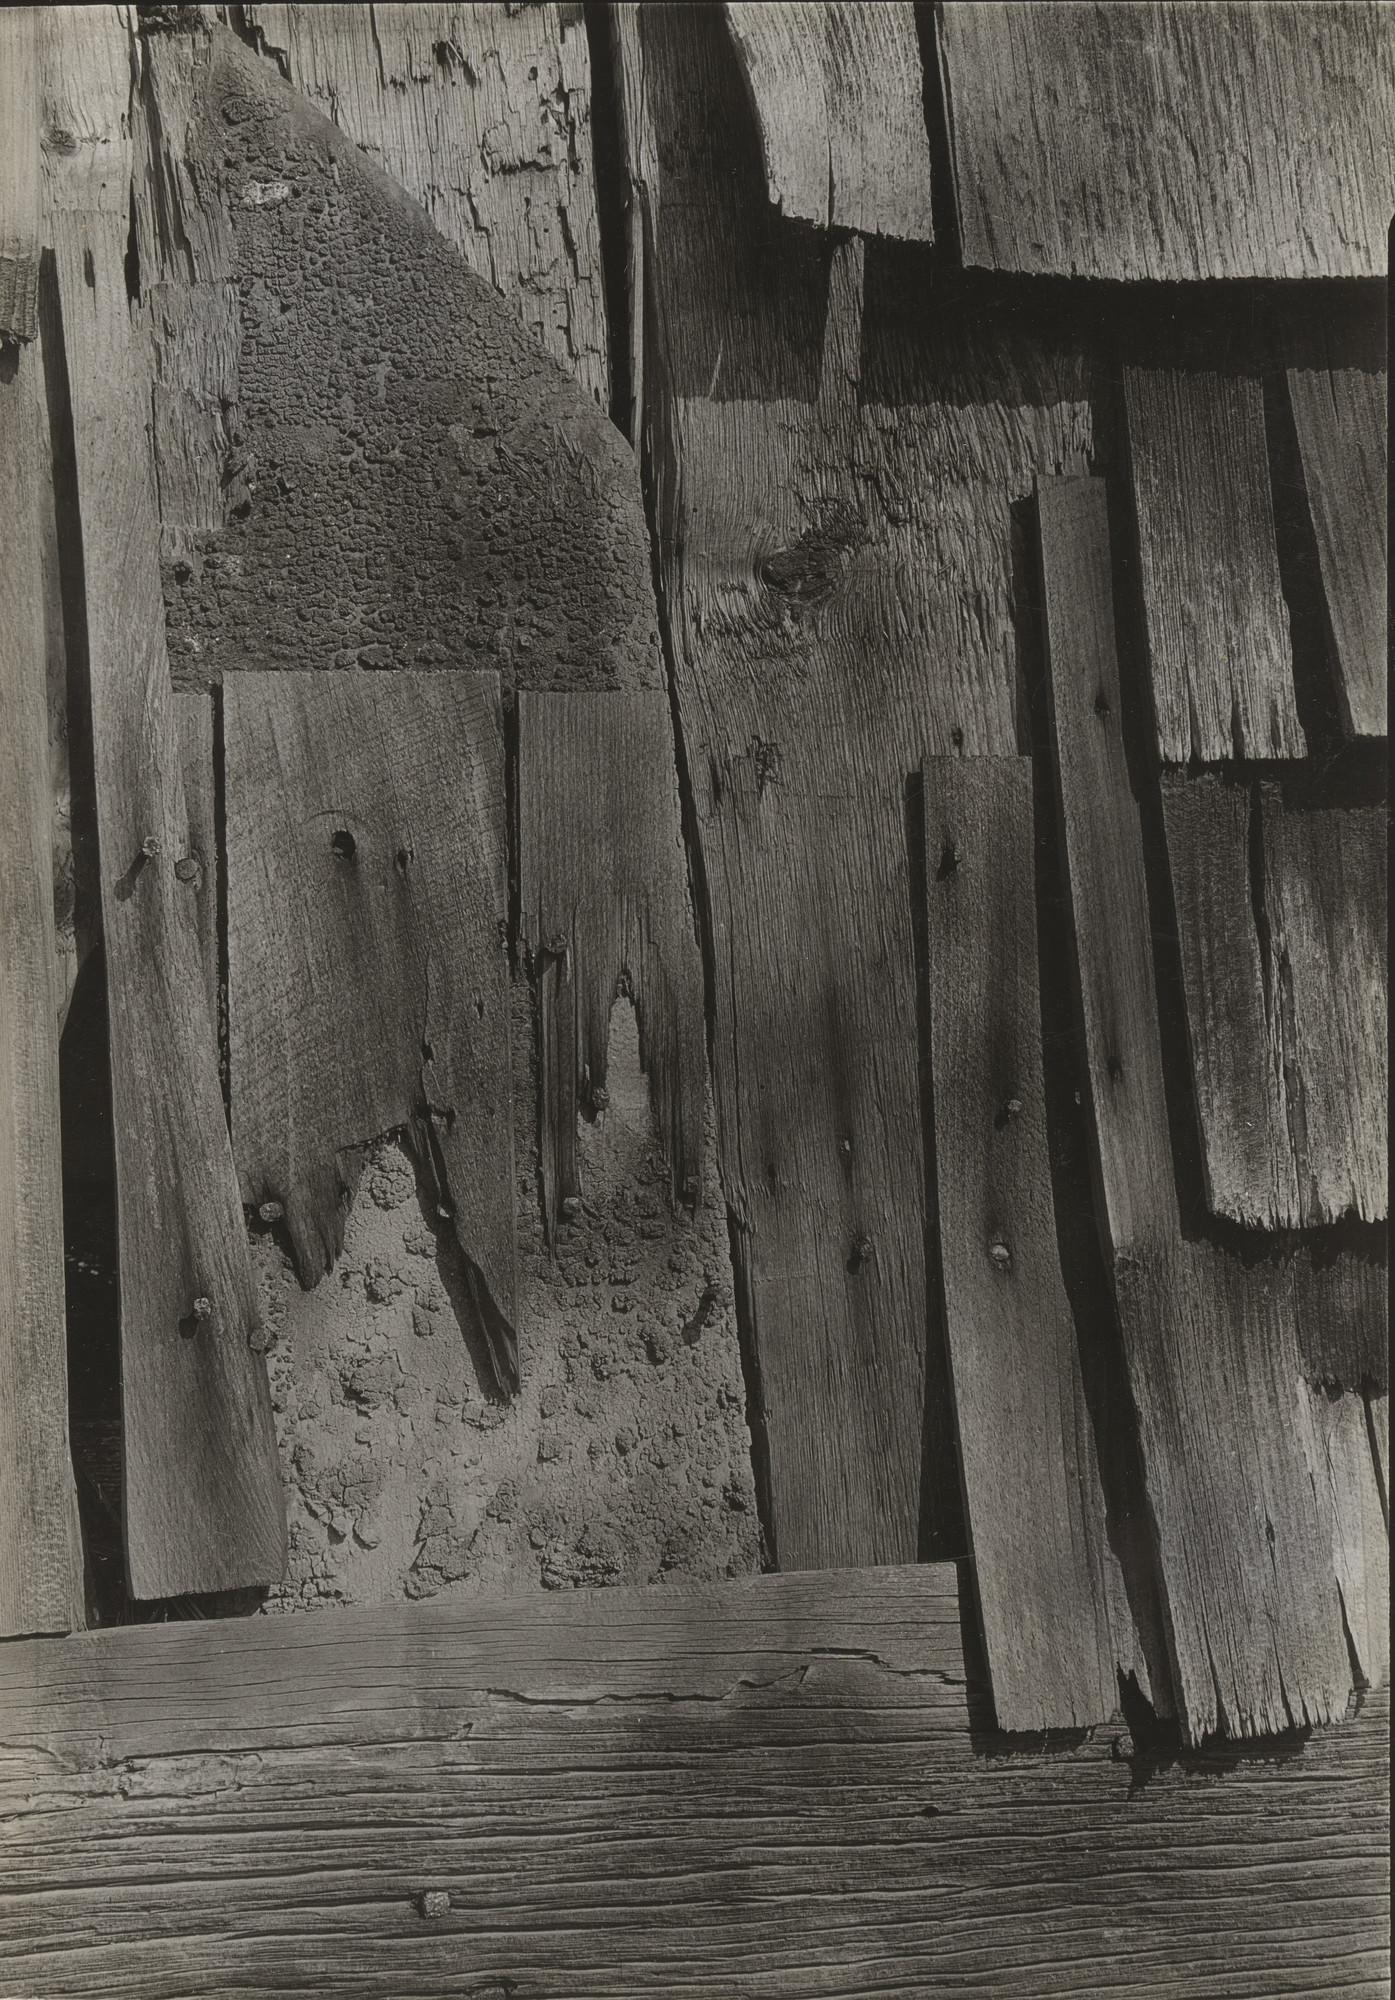 Walker Evans. Untitled (wood). 1930